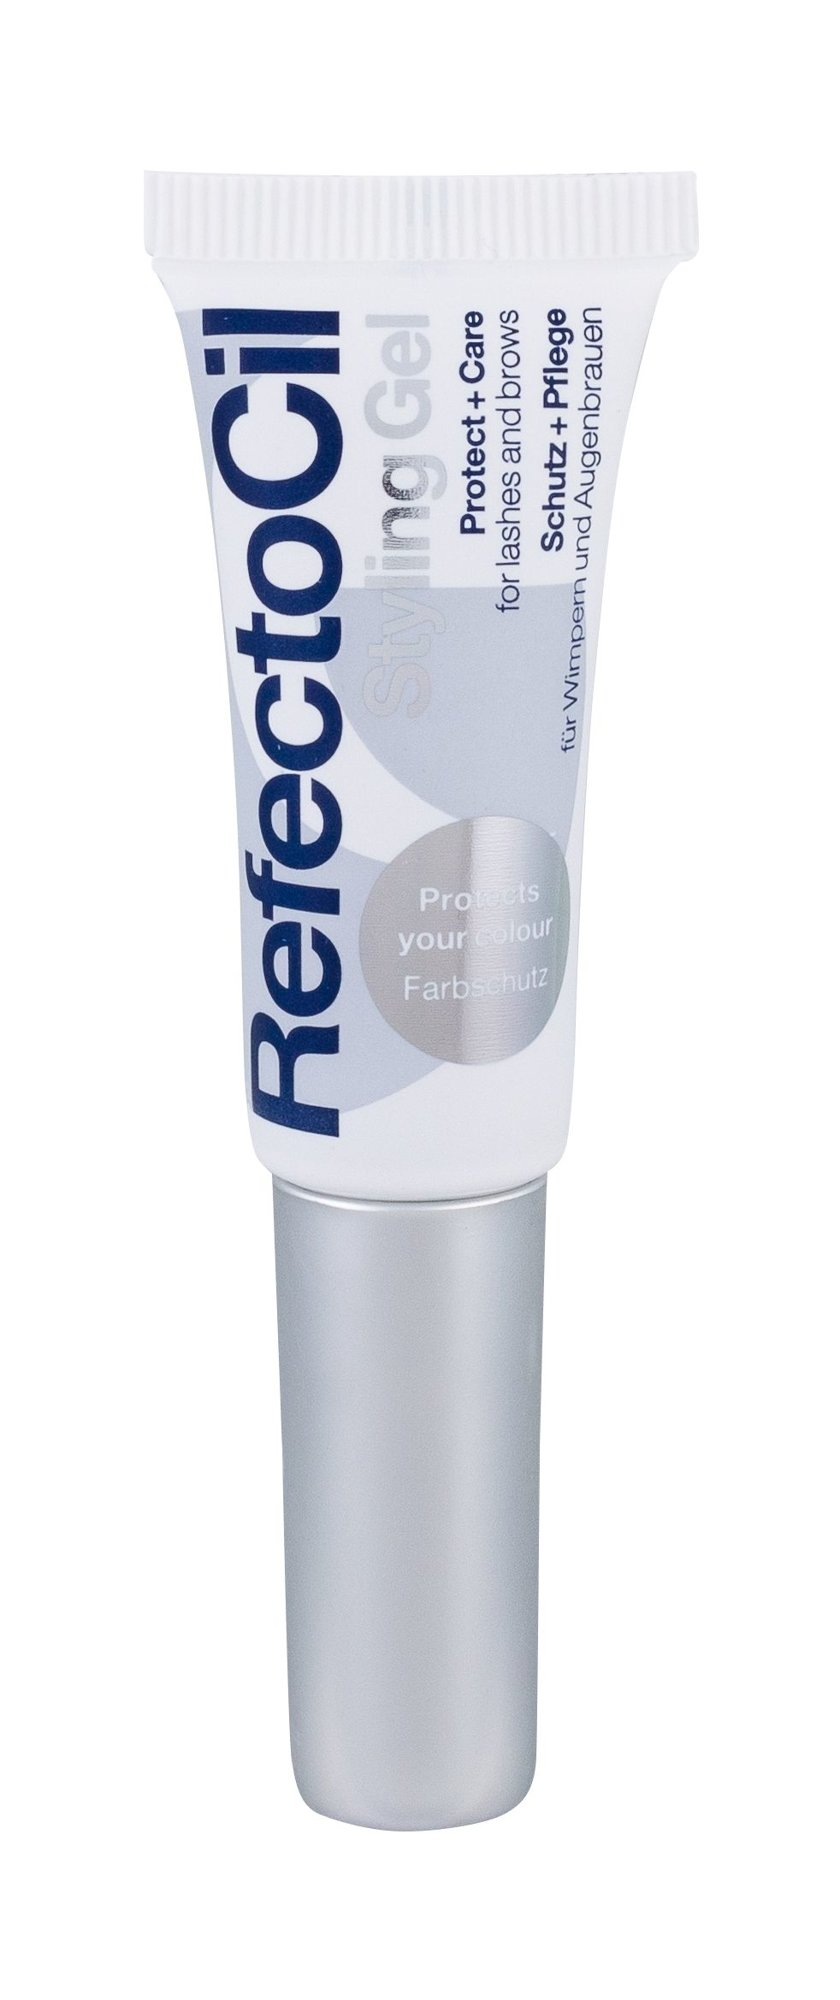 RefectoCil Styling Gel Eyelashes Care 9ml